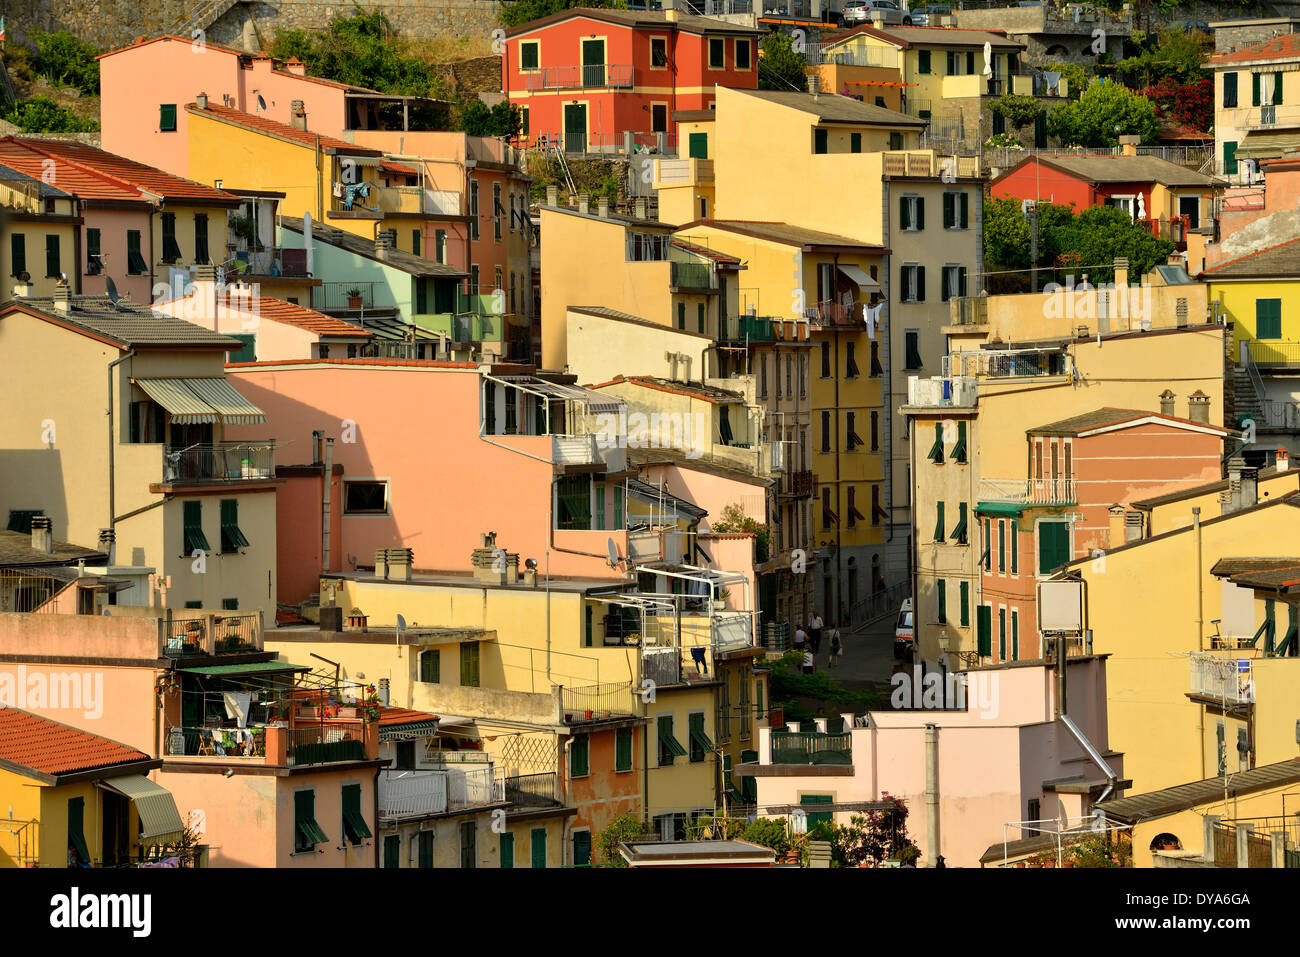 Europe Mediterranean Riviera Italian Italy Cinque Terre Rio Maggiore Window  Windows Row Houses Apartments Apartment